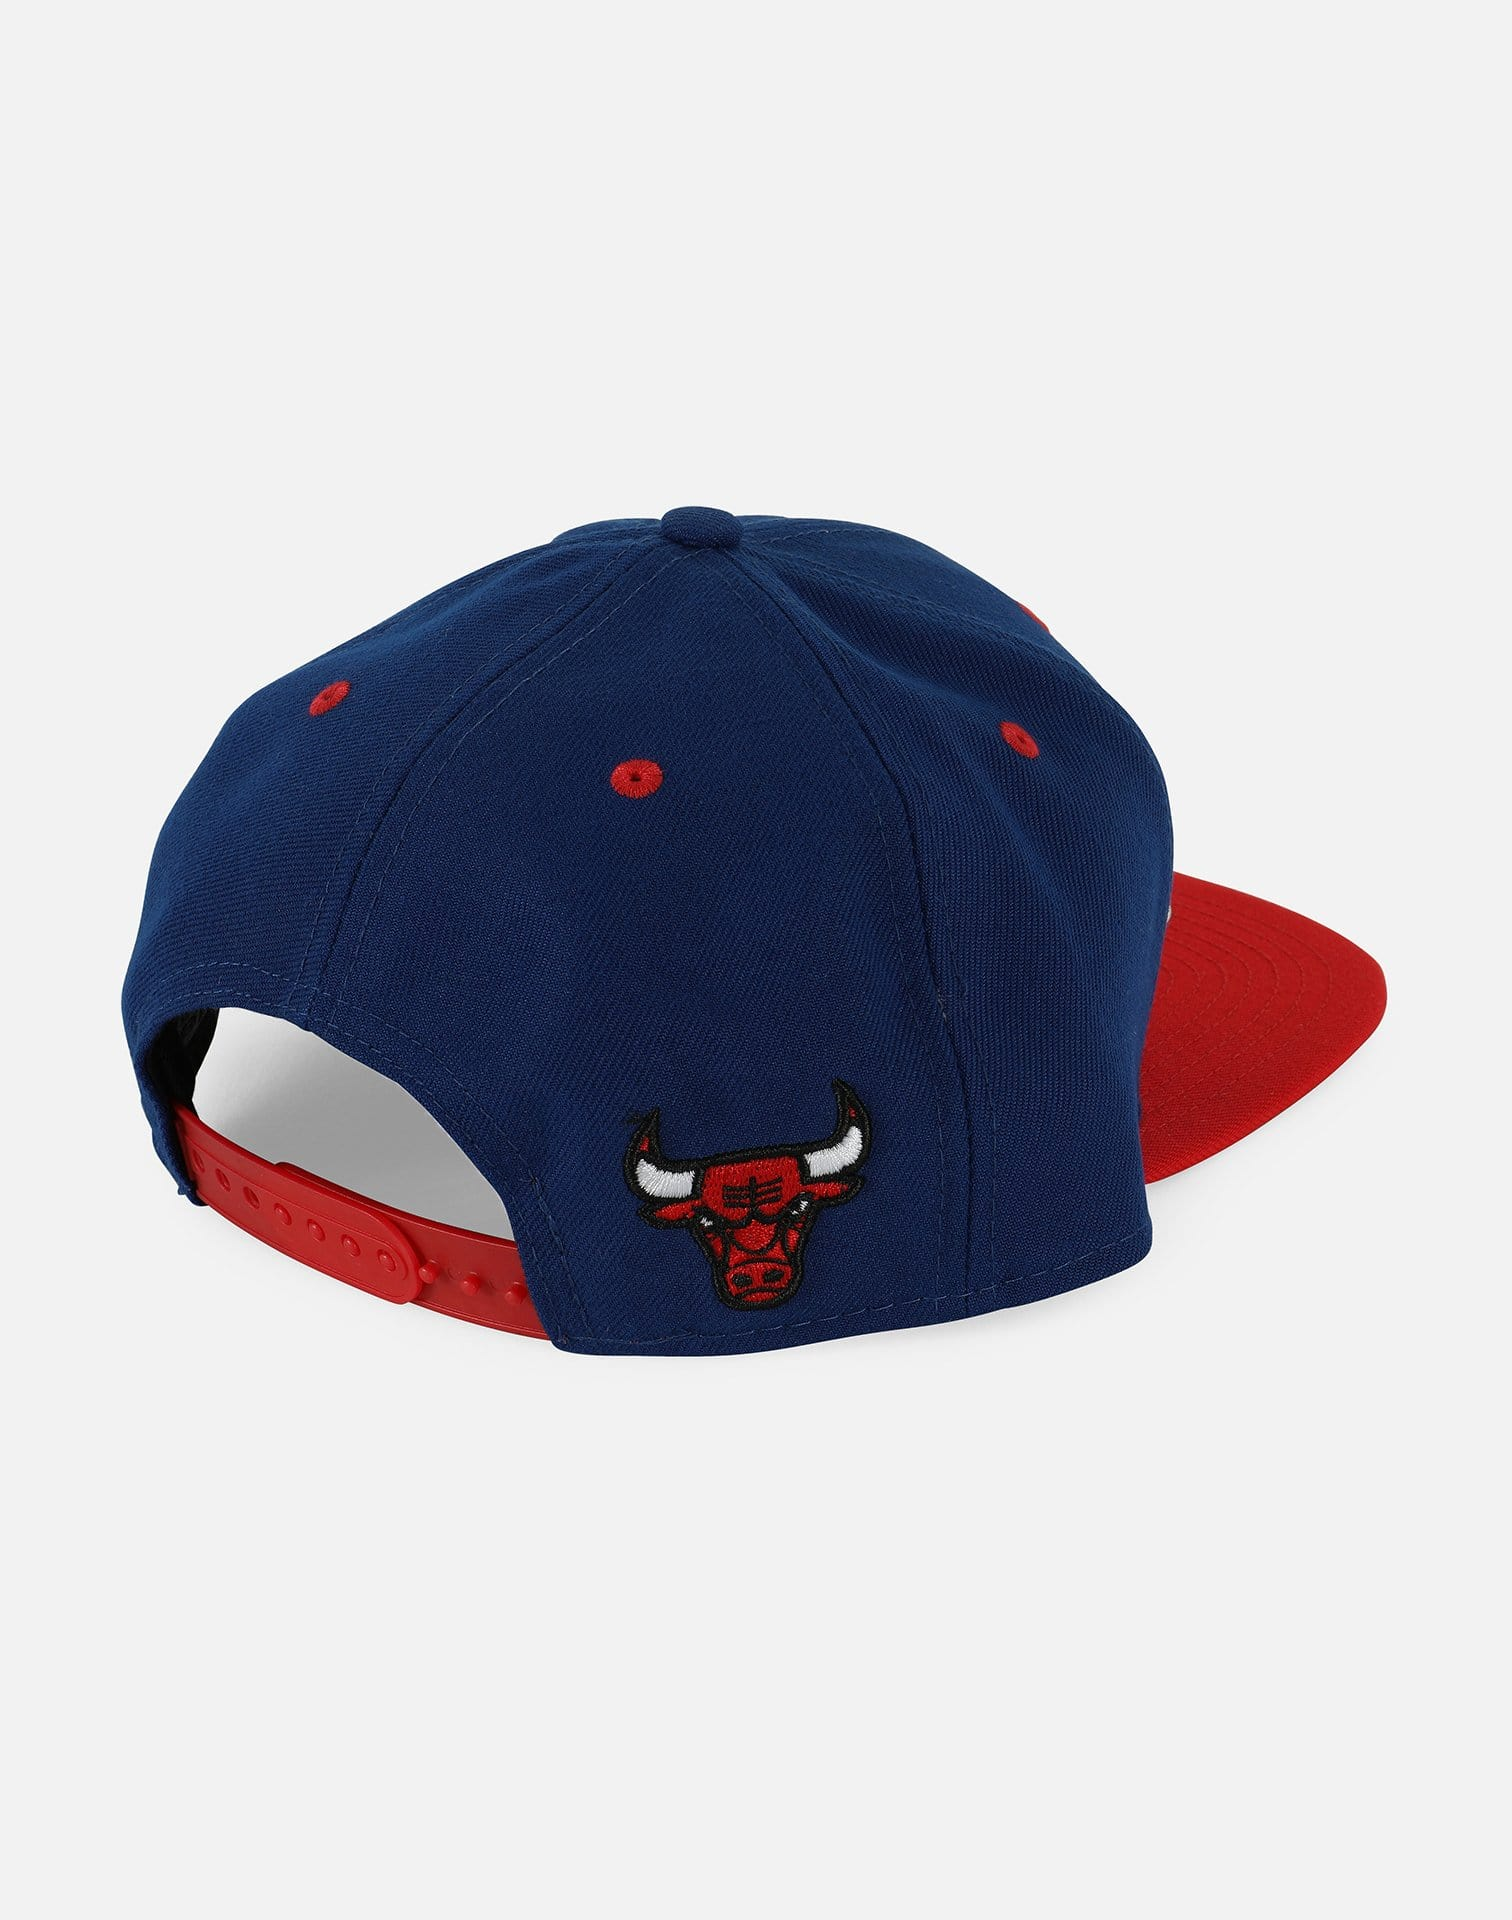 New Era NBA Chicago Bulls Exclusive 9Fifty Snapback Hat